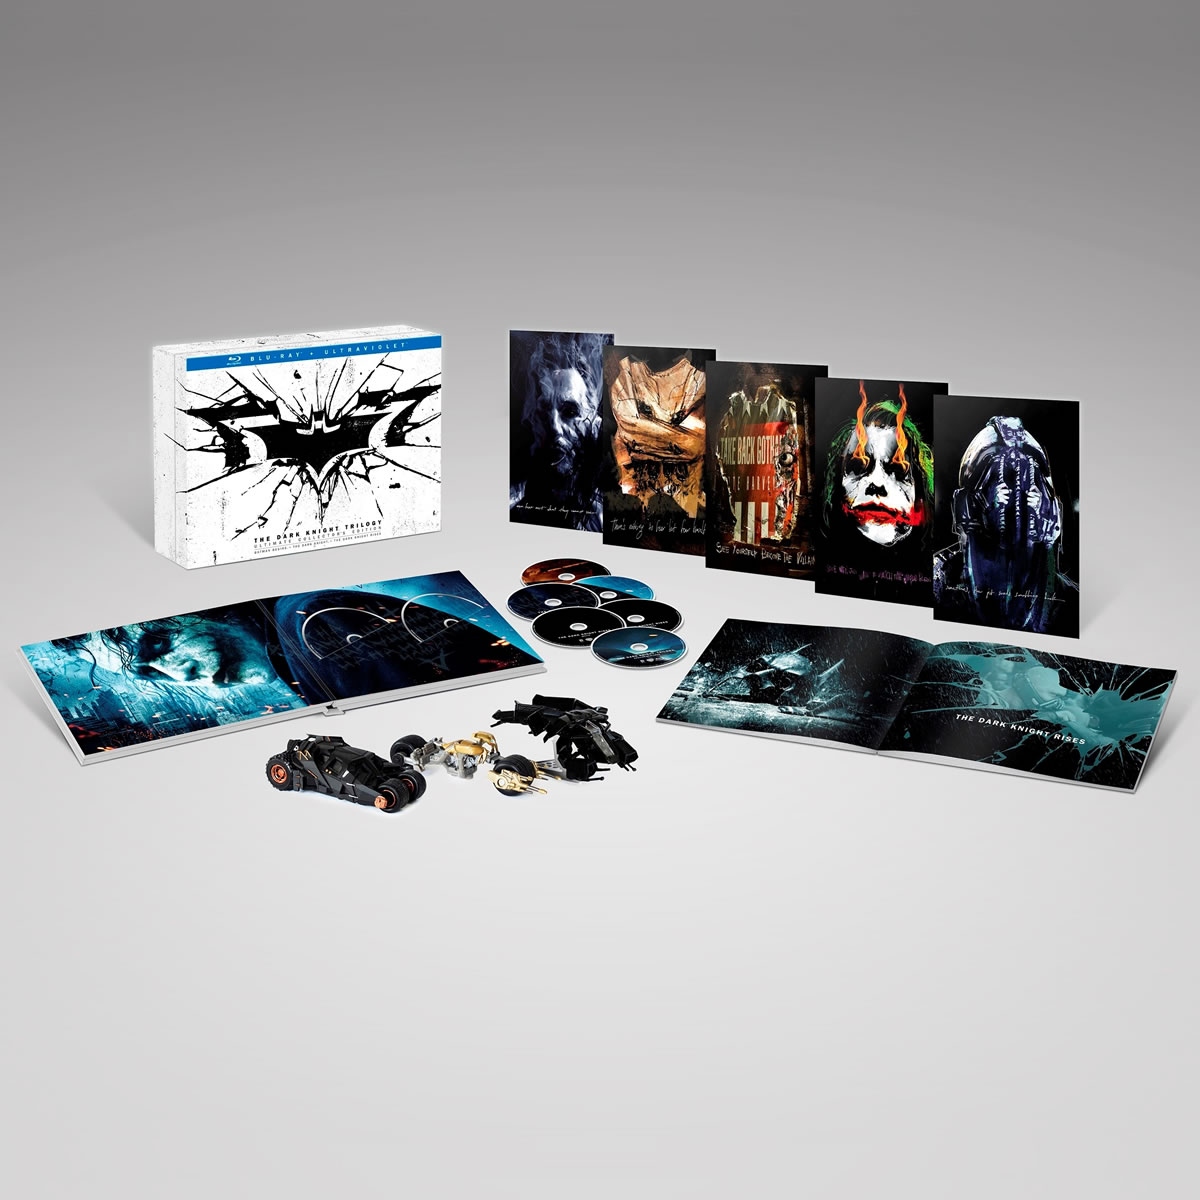 THE DARK KNIGHT TRILOGY + 3 �������� - Ultimate Collector's Limited Edition [��������� �� ���������� ����������] (6 BLU-RAY)